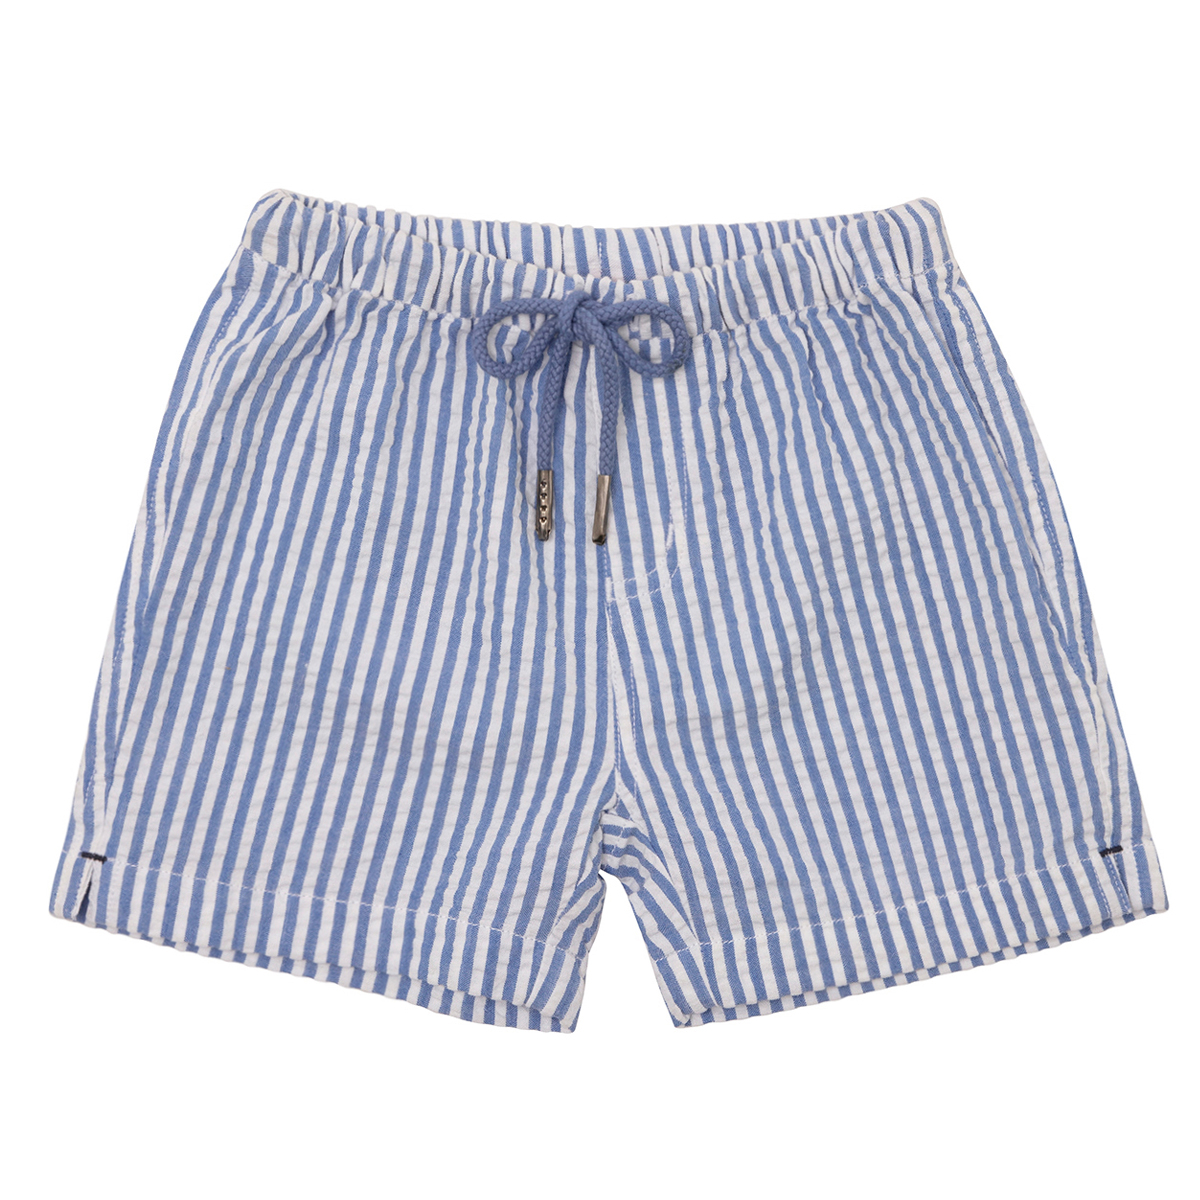 Sunuva SS19 Swimshort Blue White Stripe